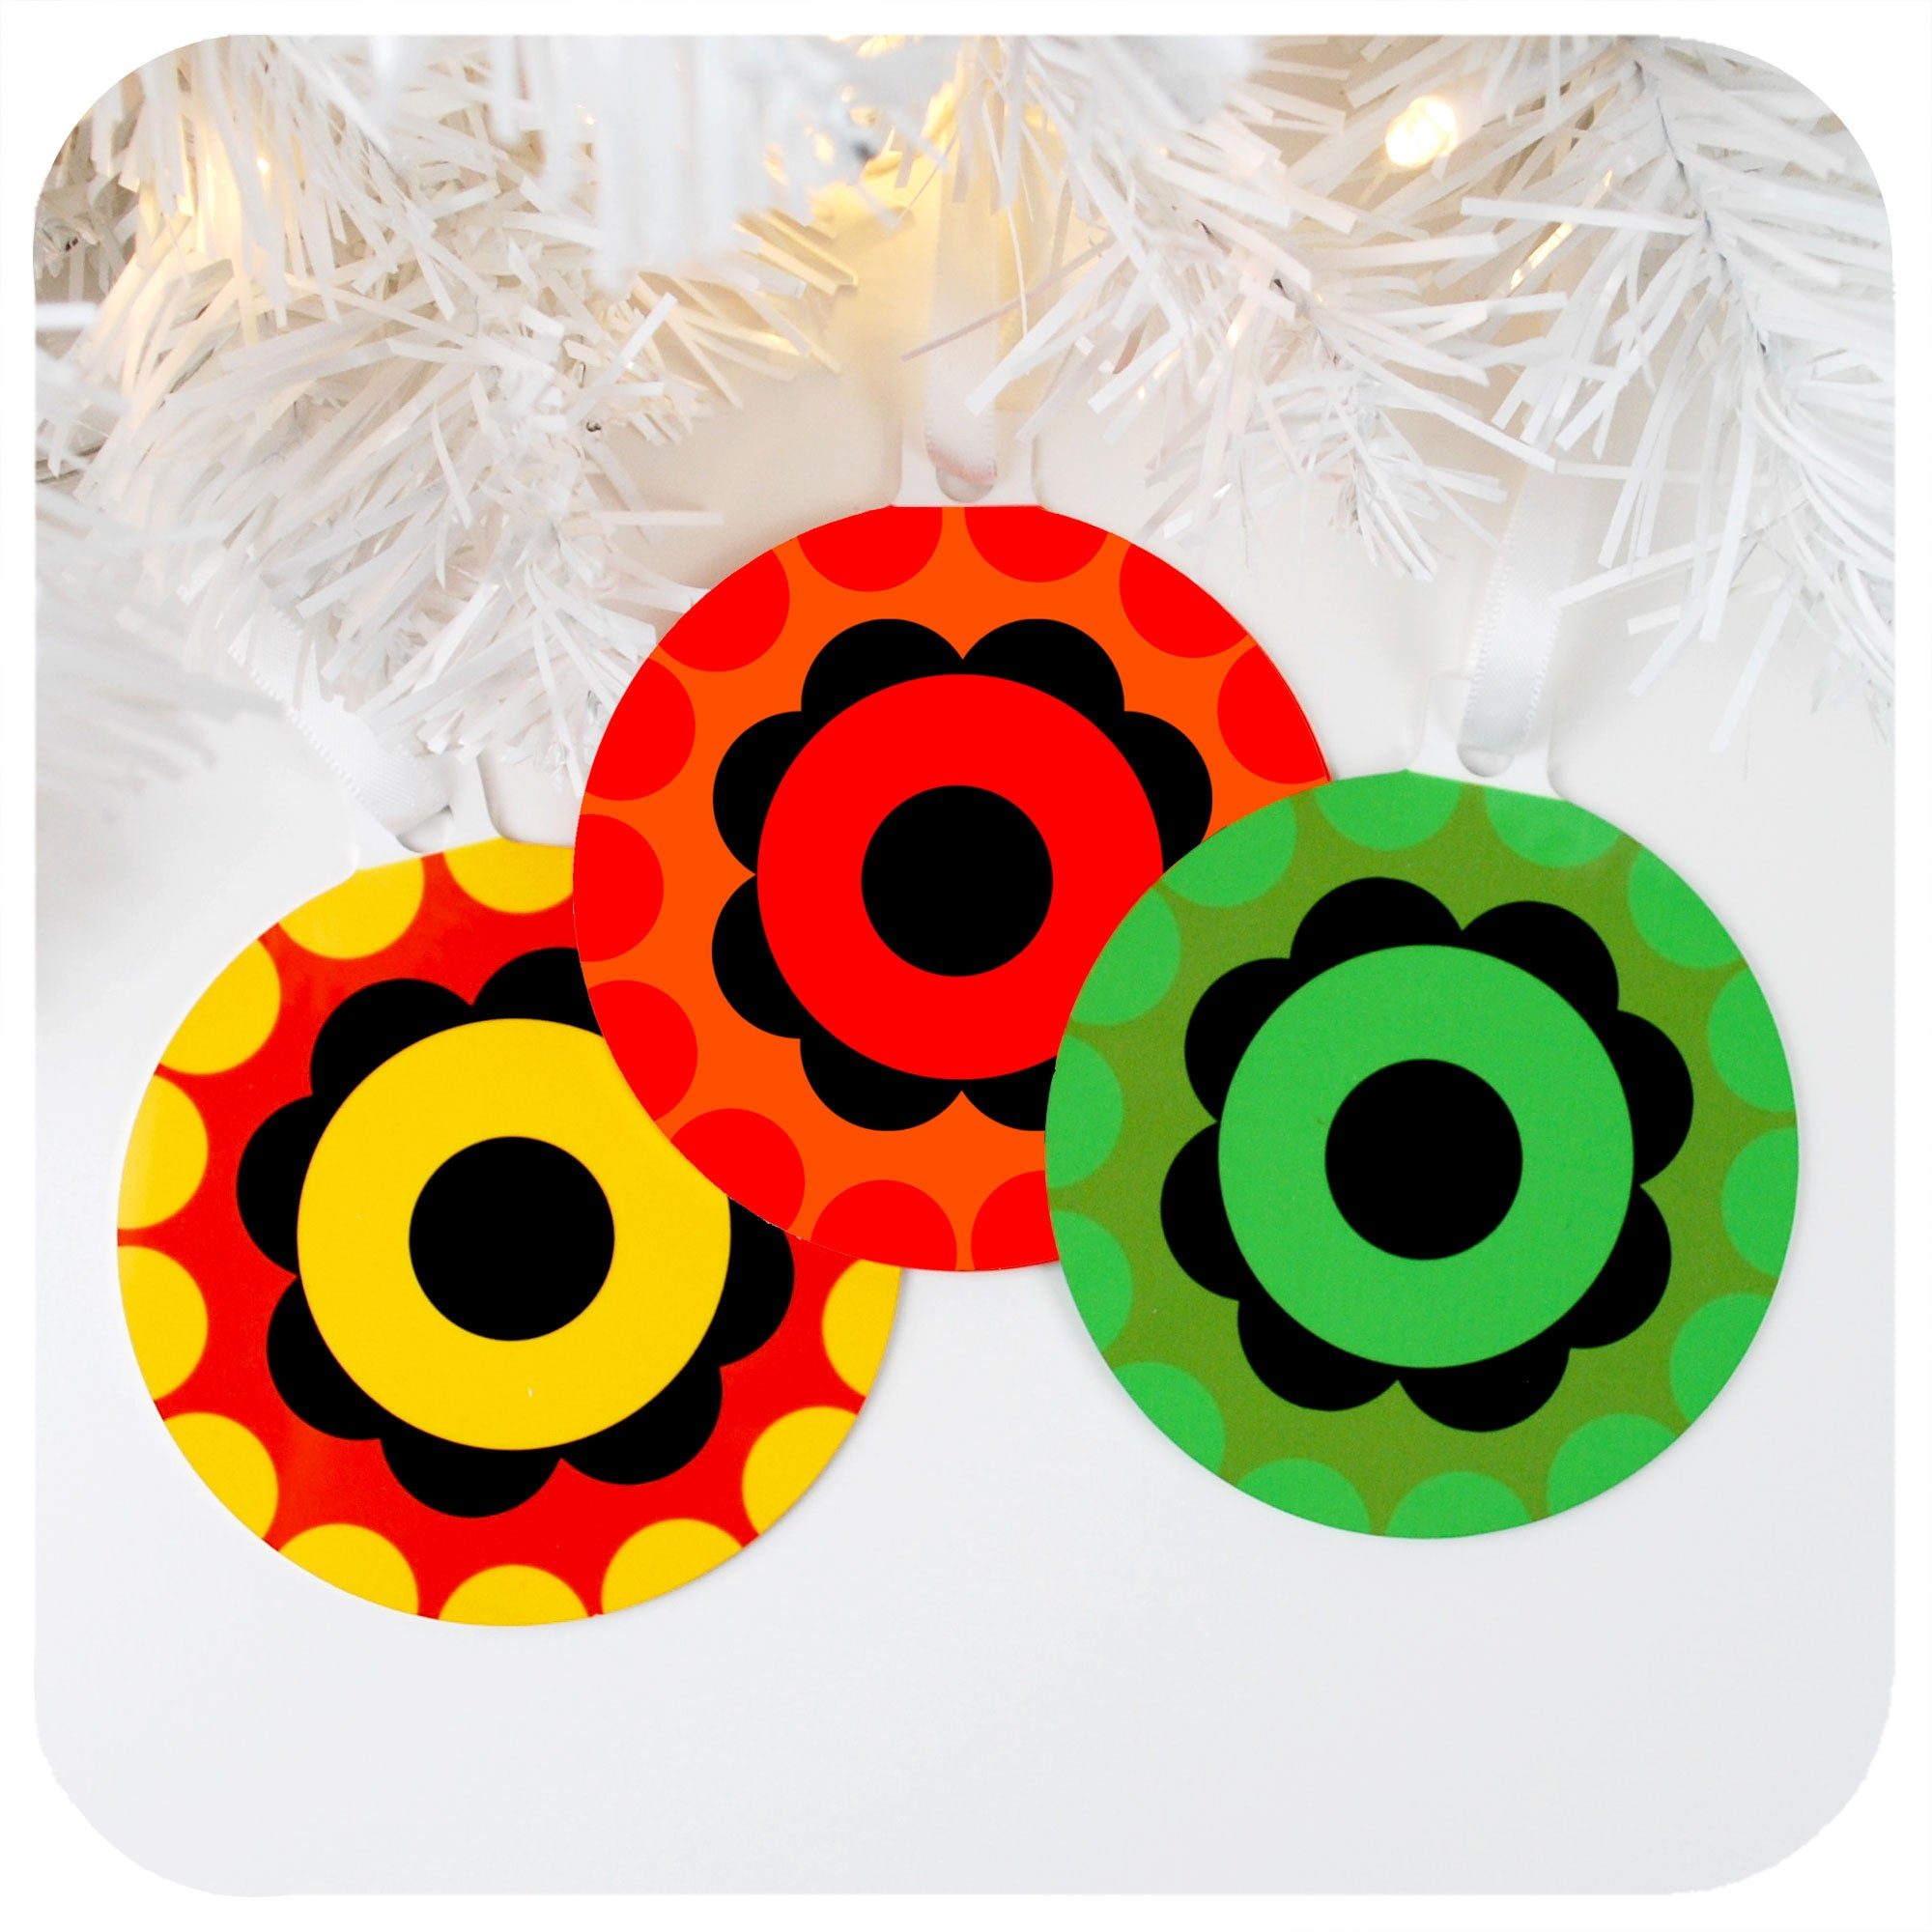 70s style retro Christmas Tree Decoration - set of 3 | The Inkabilly Emporium